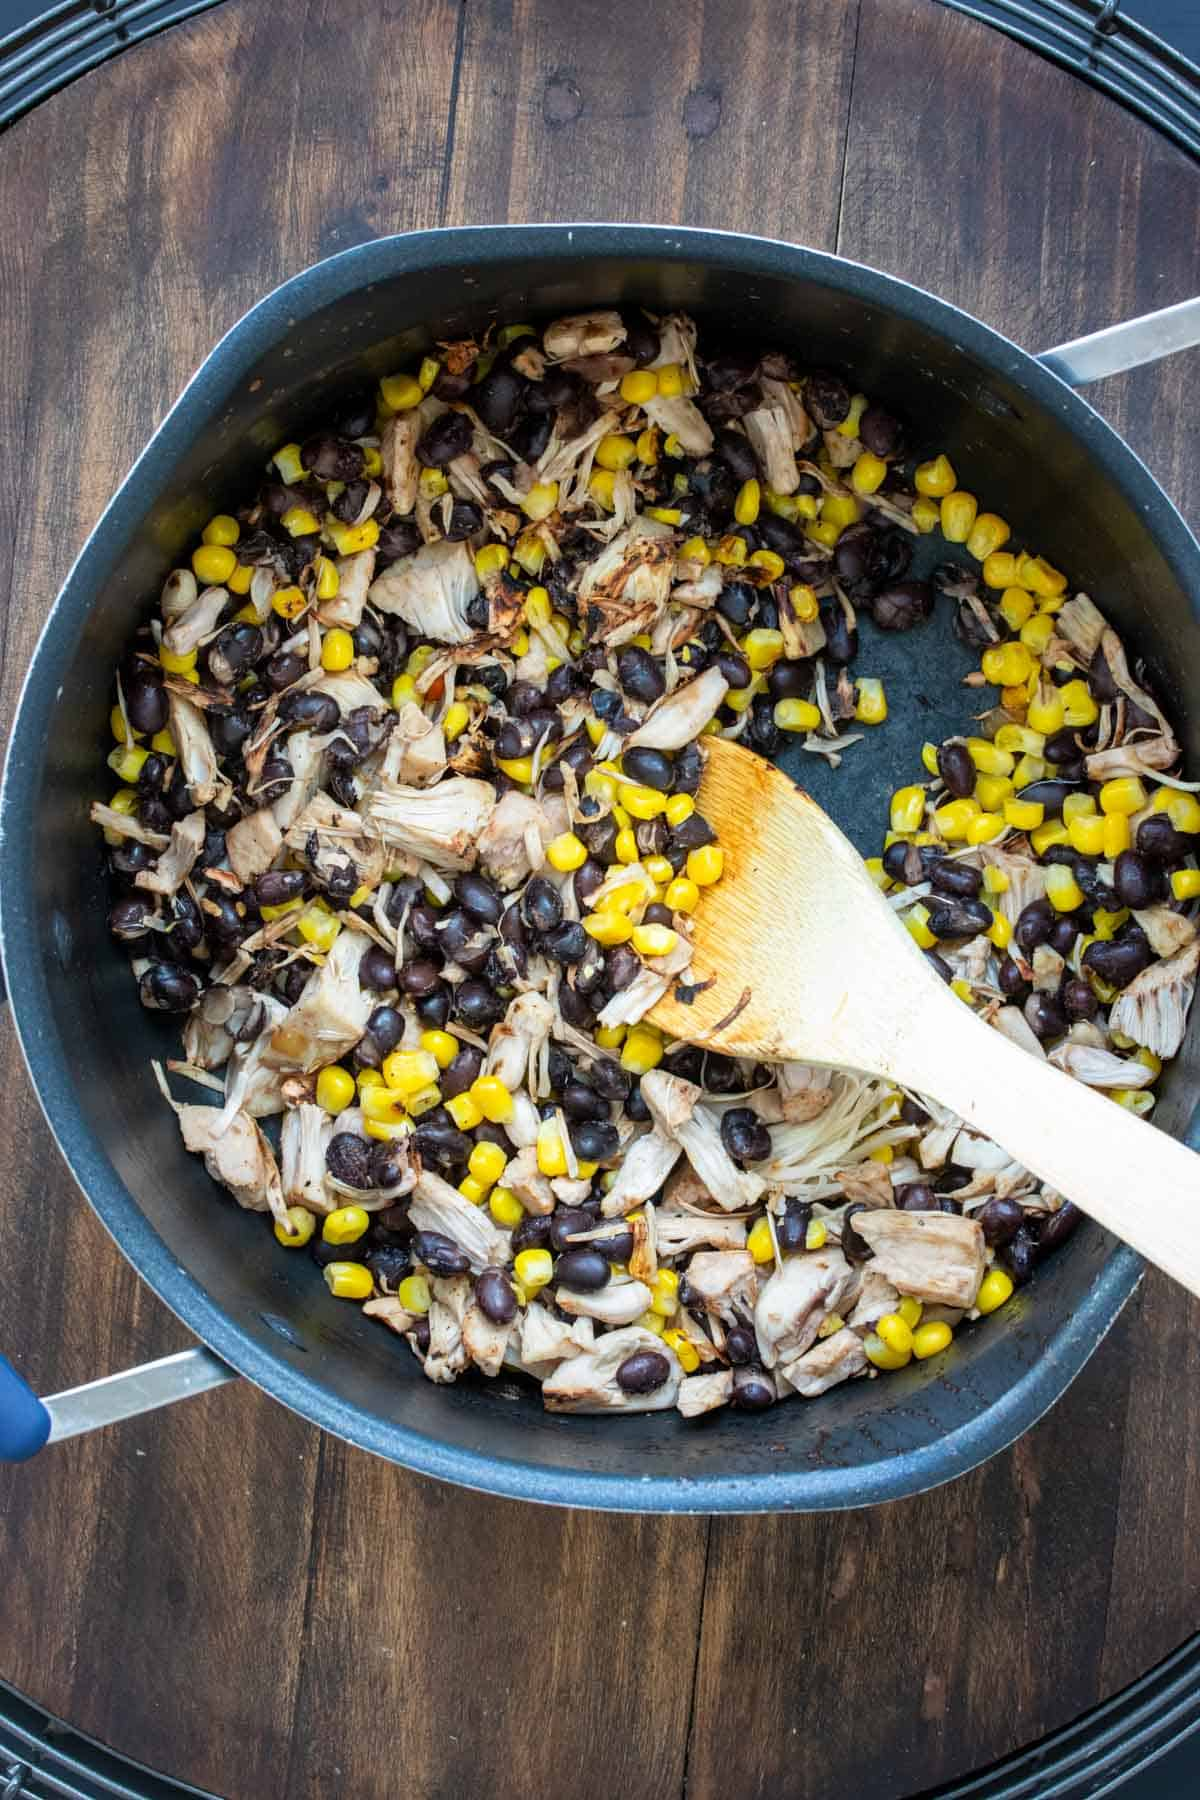 Wooden spoon mixing corn, beans and jackfruit in a pot